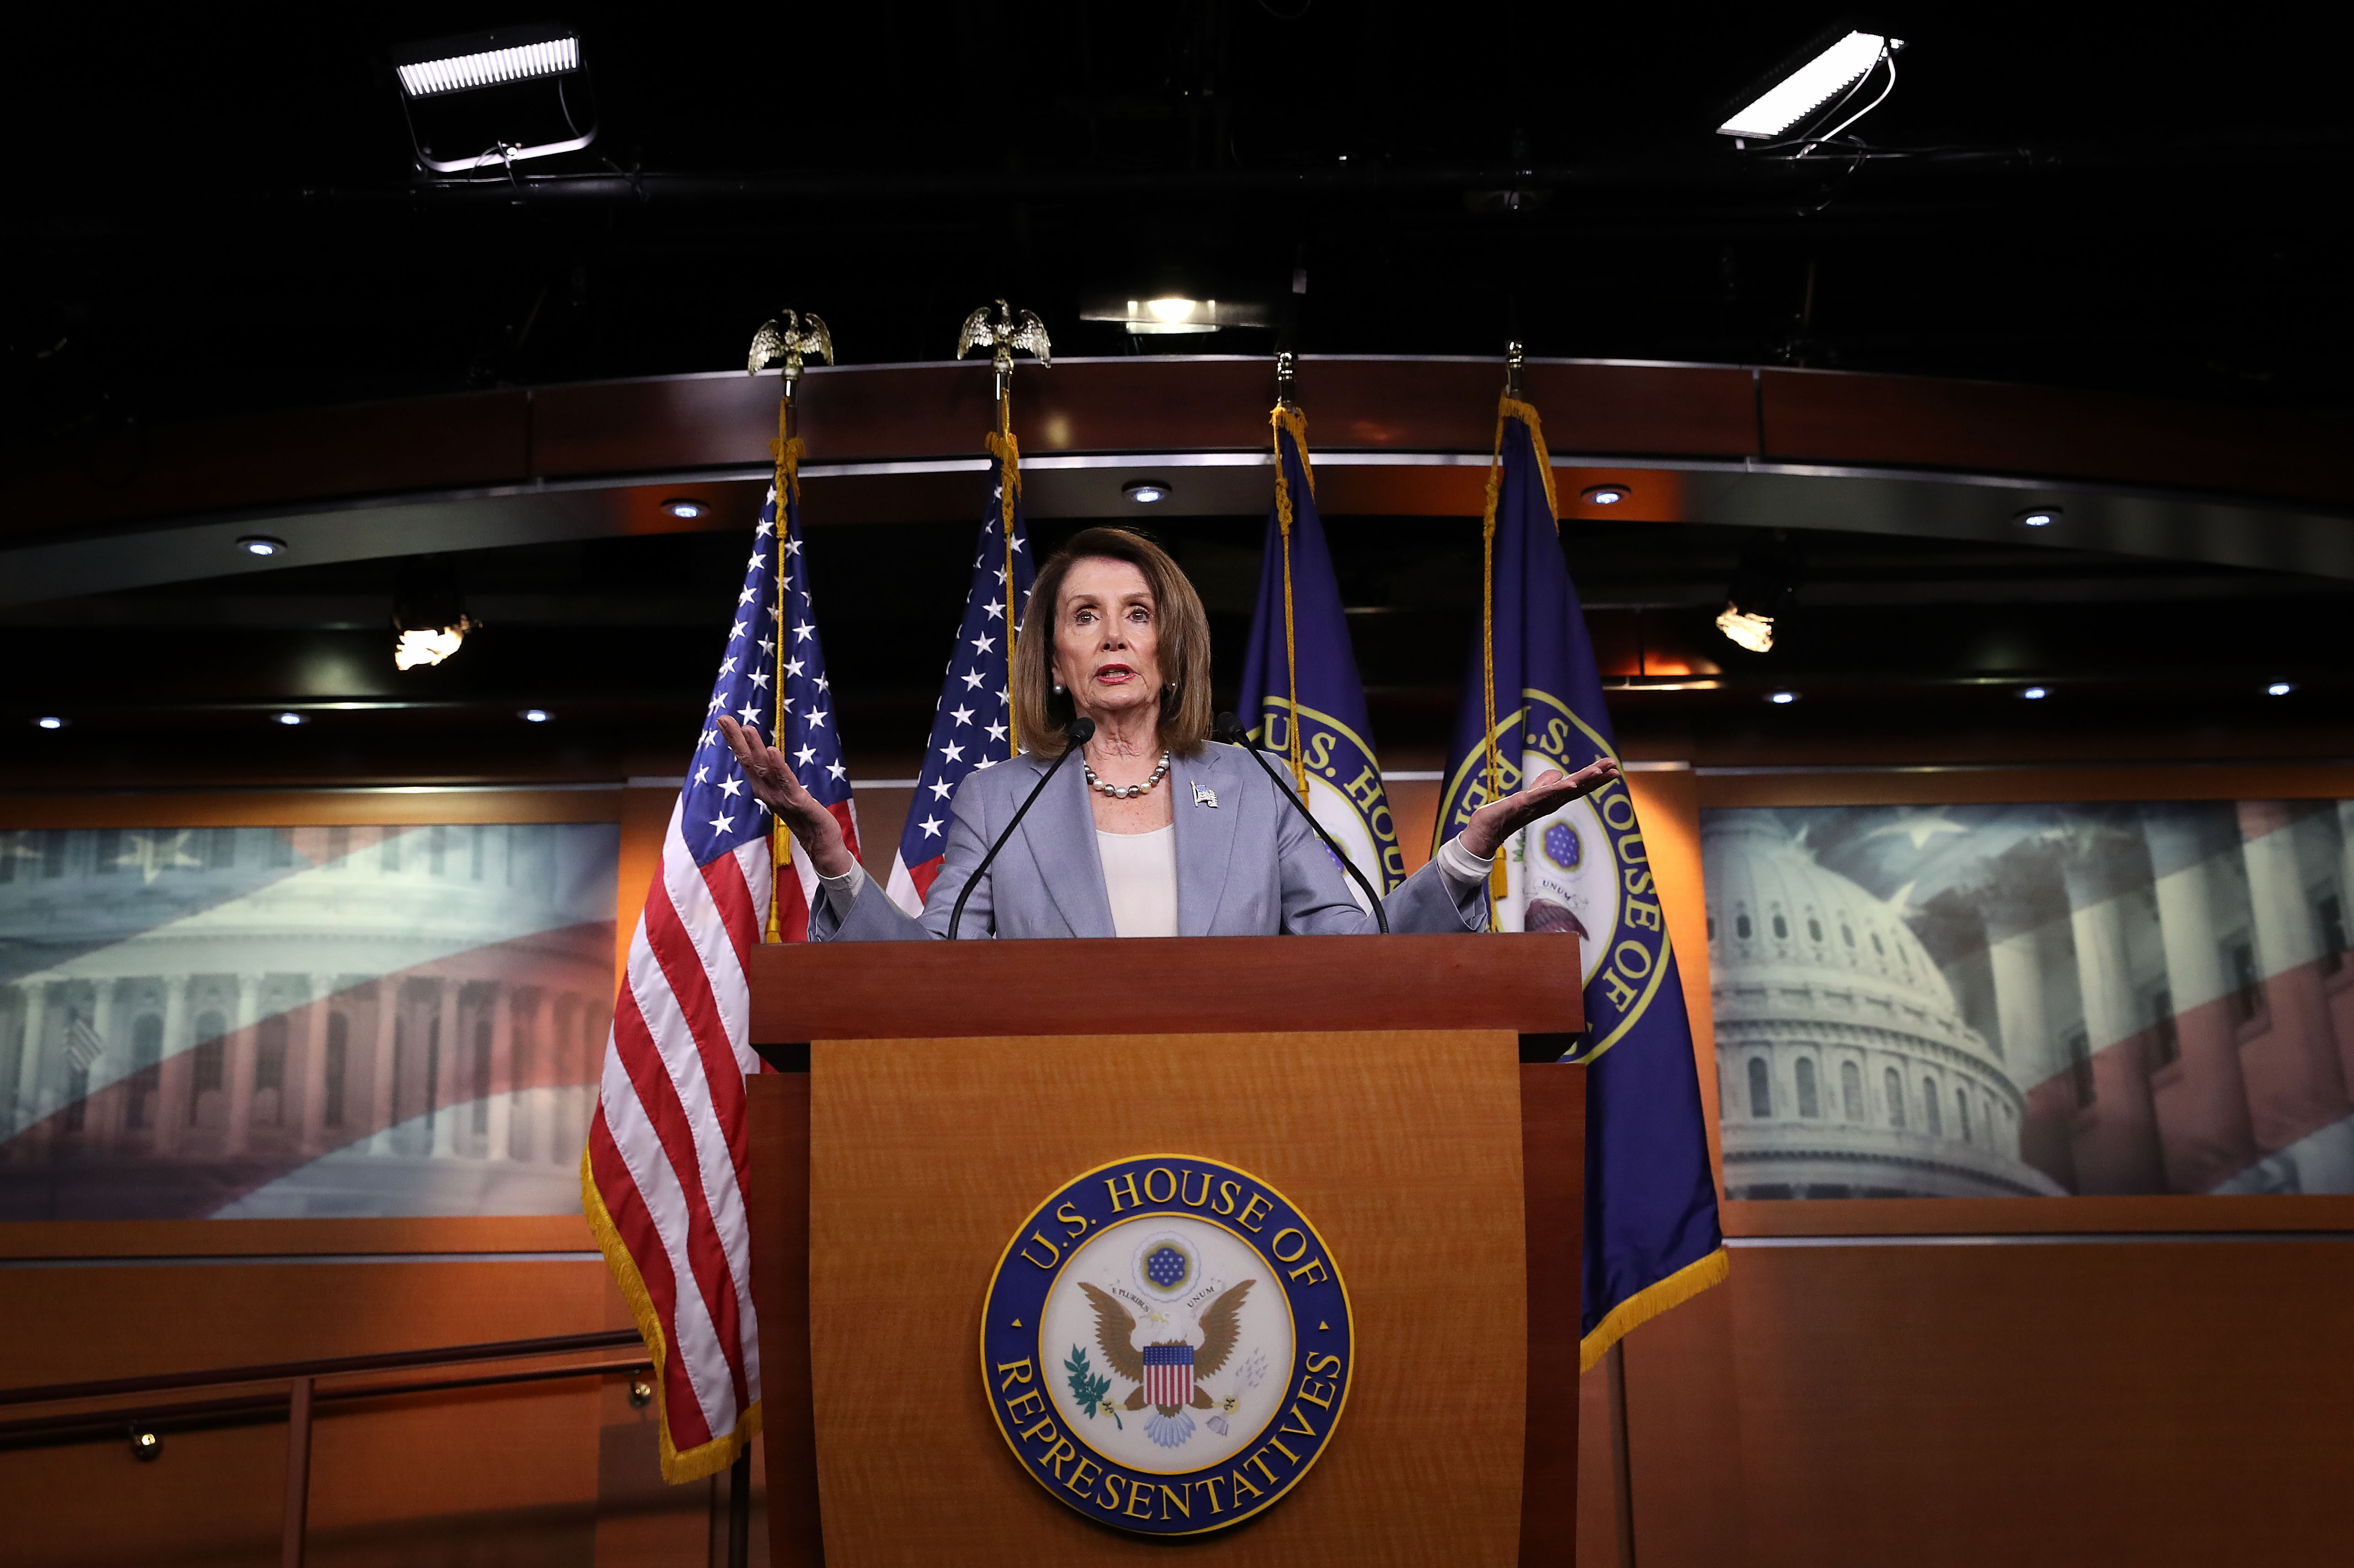 Speaker of the House Nancy Pelosi answers questions during a press conference at the U.S. Capitol (Win McNamee/Getty Images)